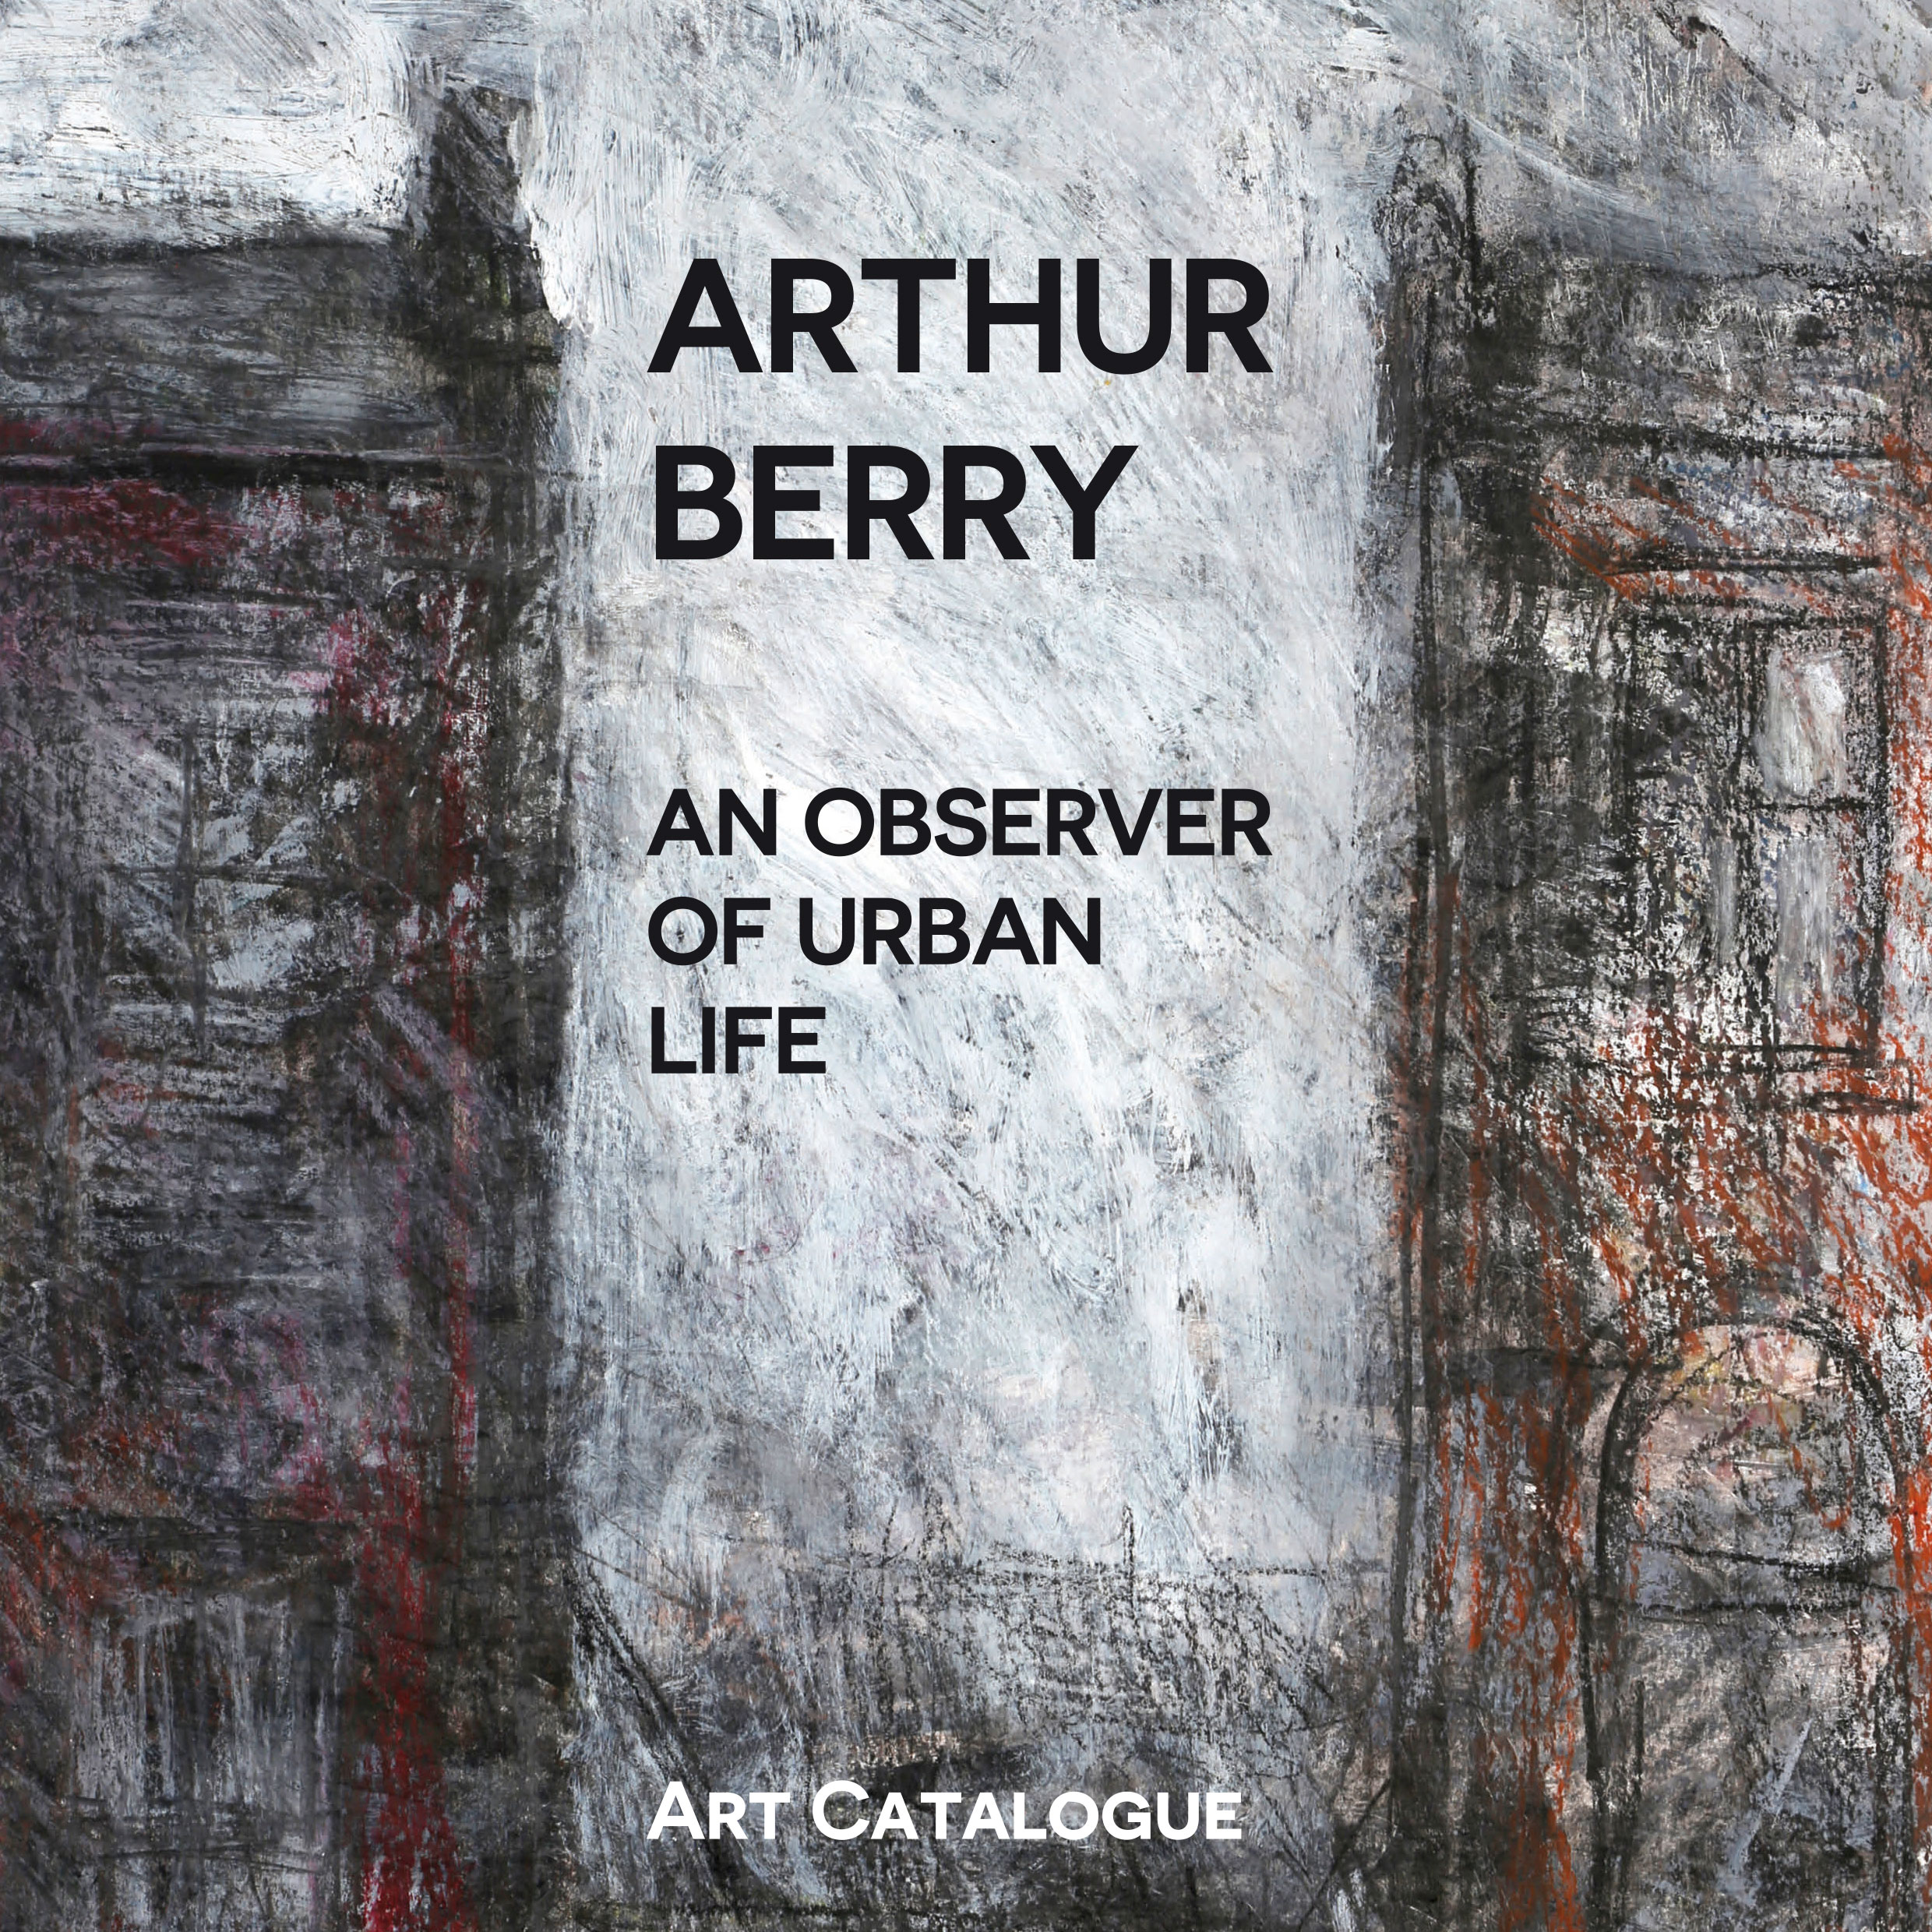 Arthur-Berry-book-cover-design-front-cover